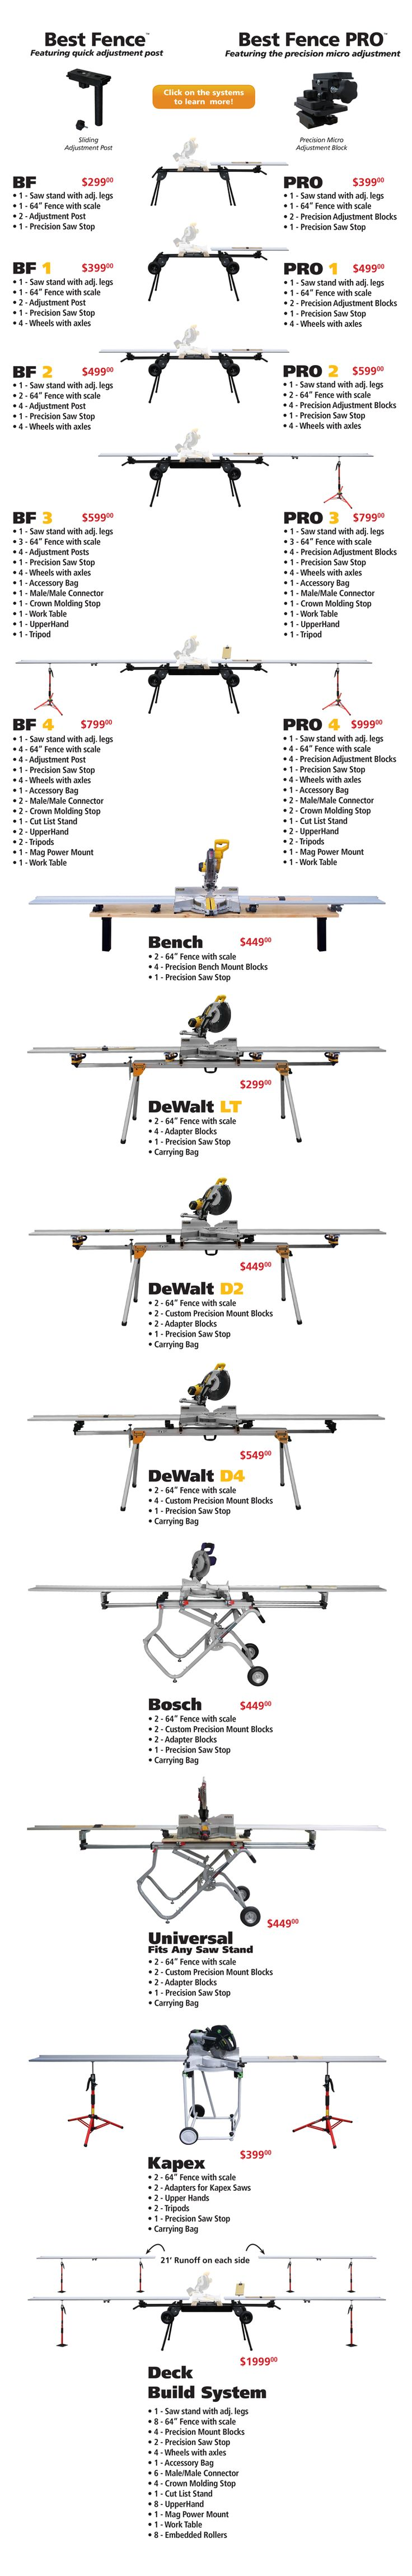 The Best Fence PRO system was designed from the ground up to give you shop level accuracy in the field. This highly modular system is easy to set up, transpo...